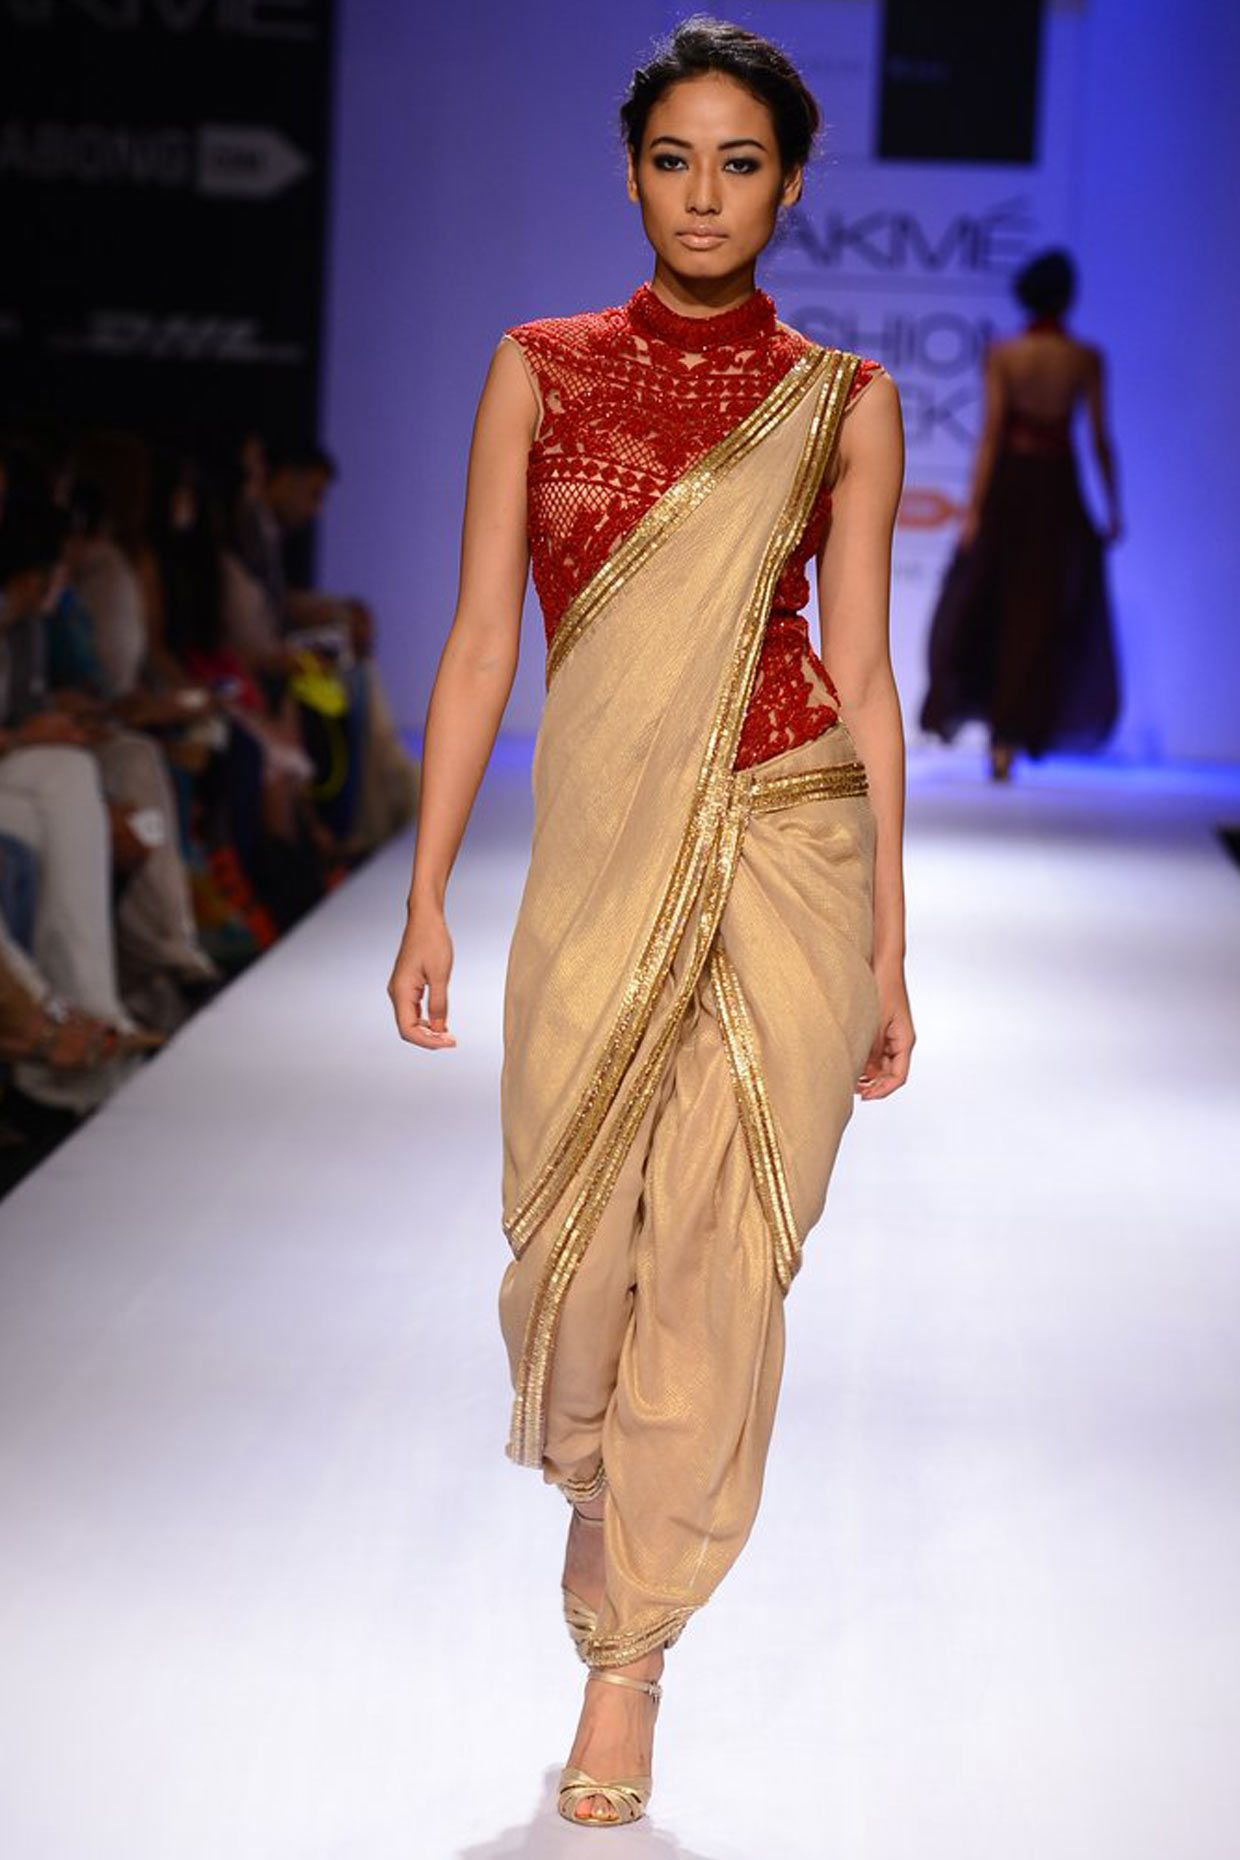 a6ceca749b7a7 Gold with red embroidery dhoti sari gown available only at Pernia's Pop-Up  Shop.